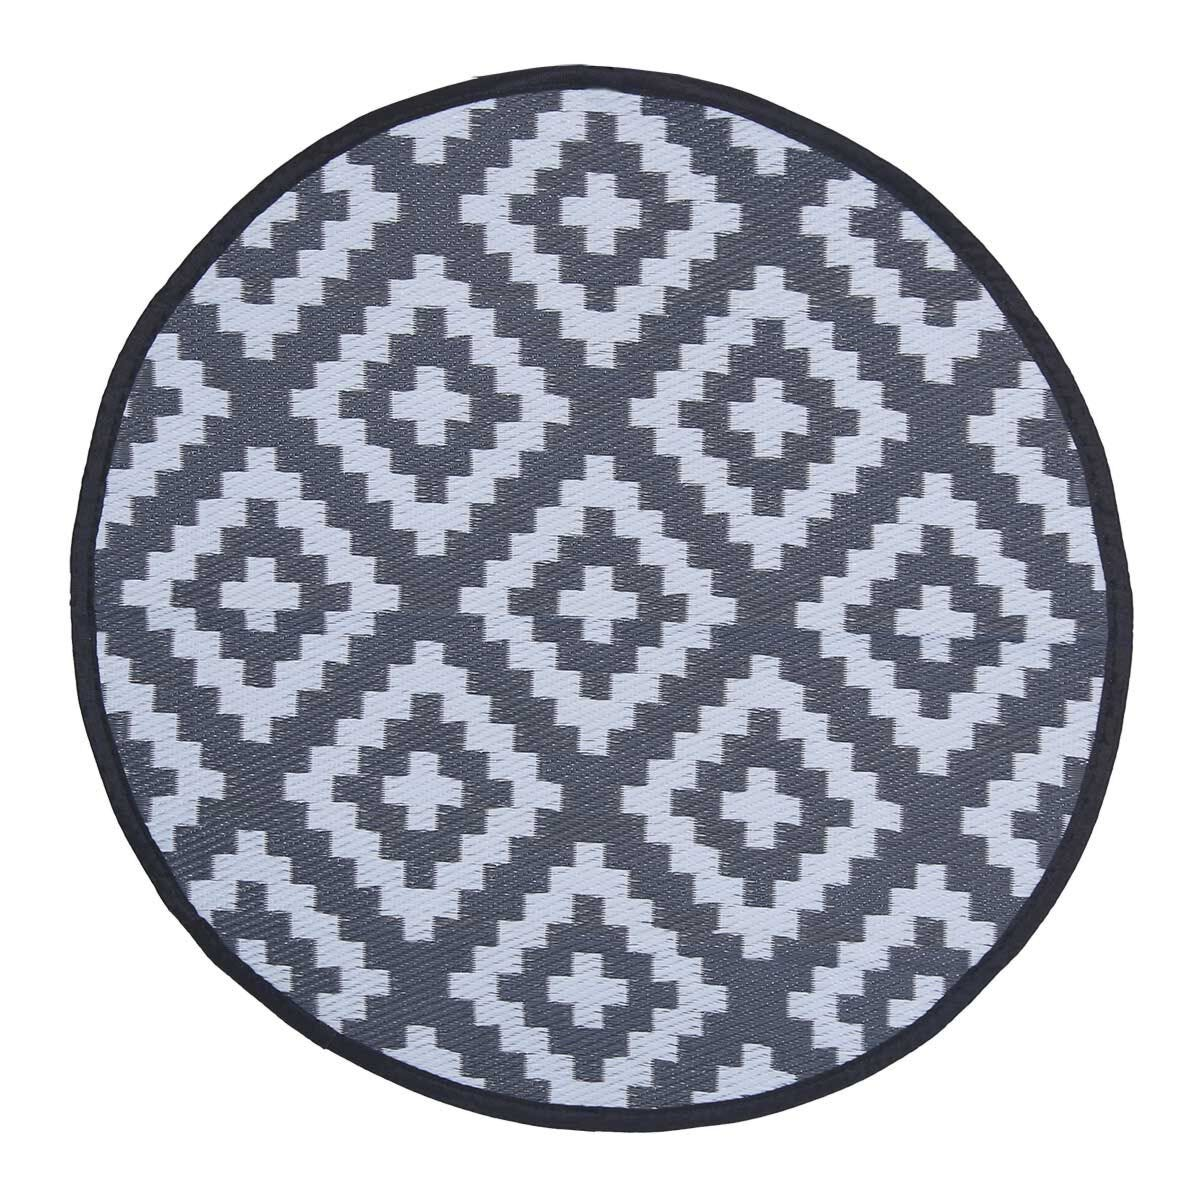 Charles Bentley Outdoor Rug Round 100cm Black and White